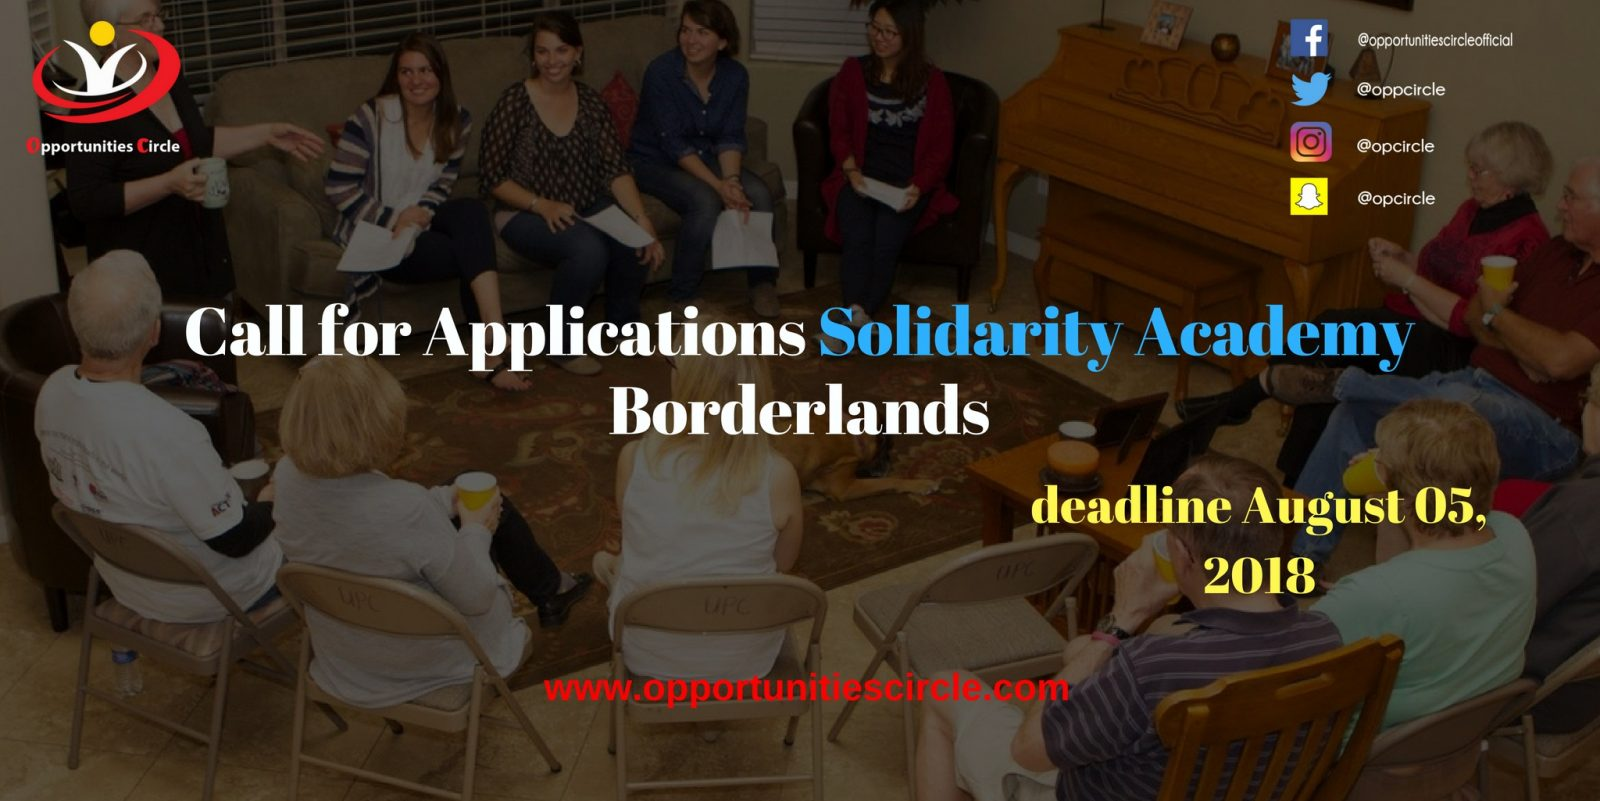 Call for Applications Solidarity Academy Borderlands - Call for Applications Solidarity Academy Borderlands